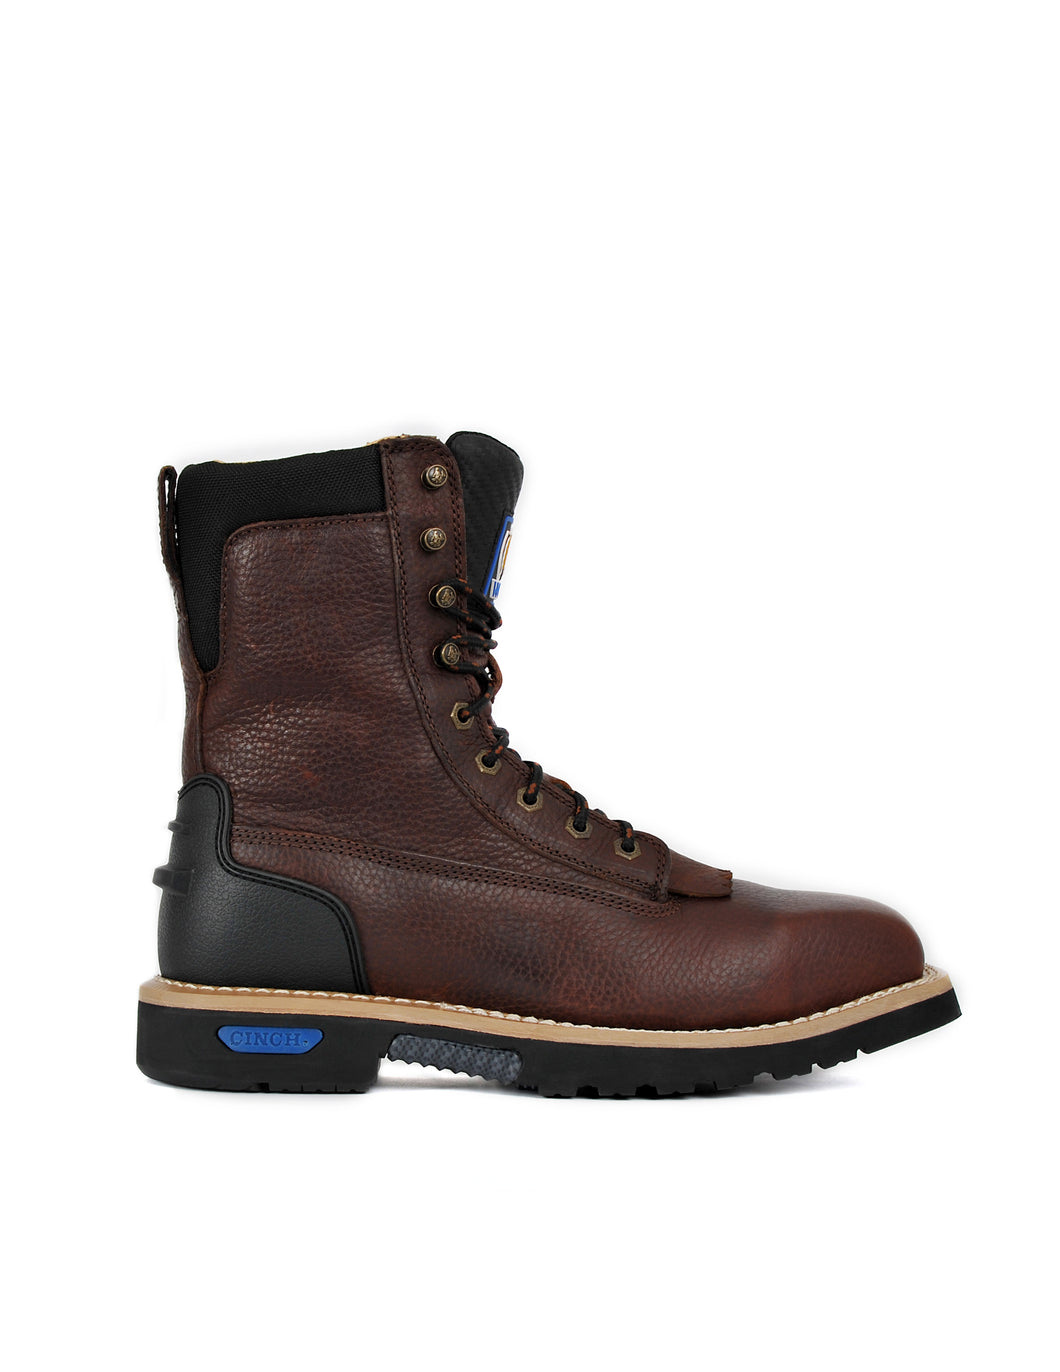 Workboot Marketing Mens Boots Wxm124sw Ceramic Toe Waterproof Lacer